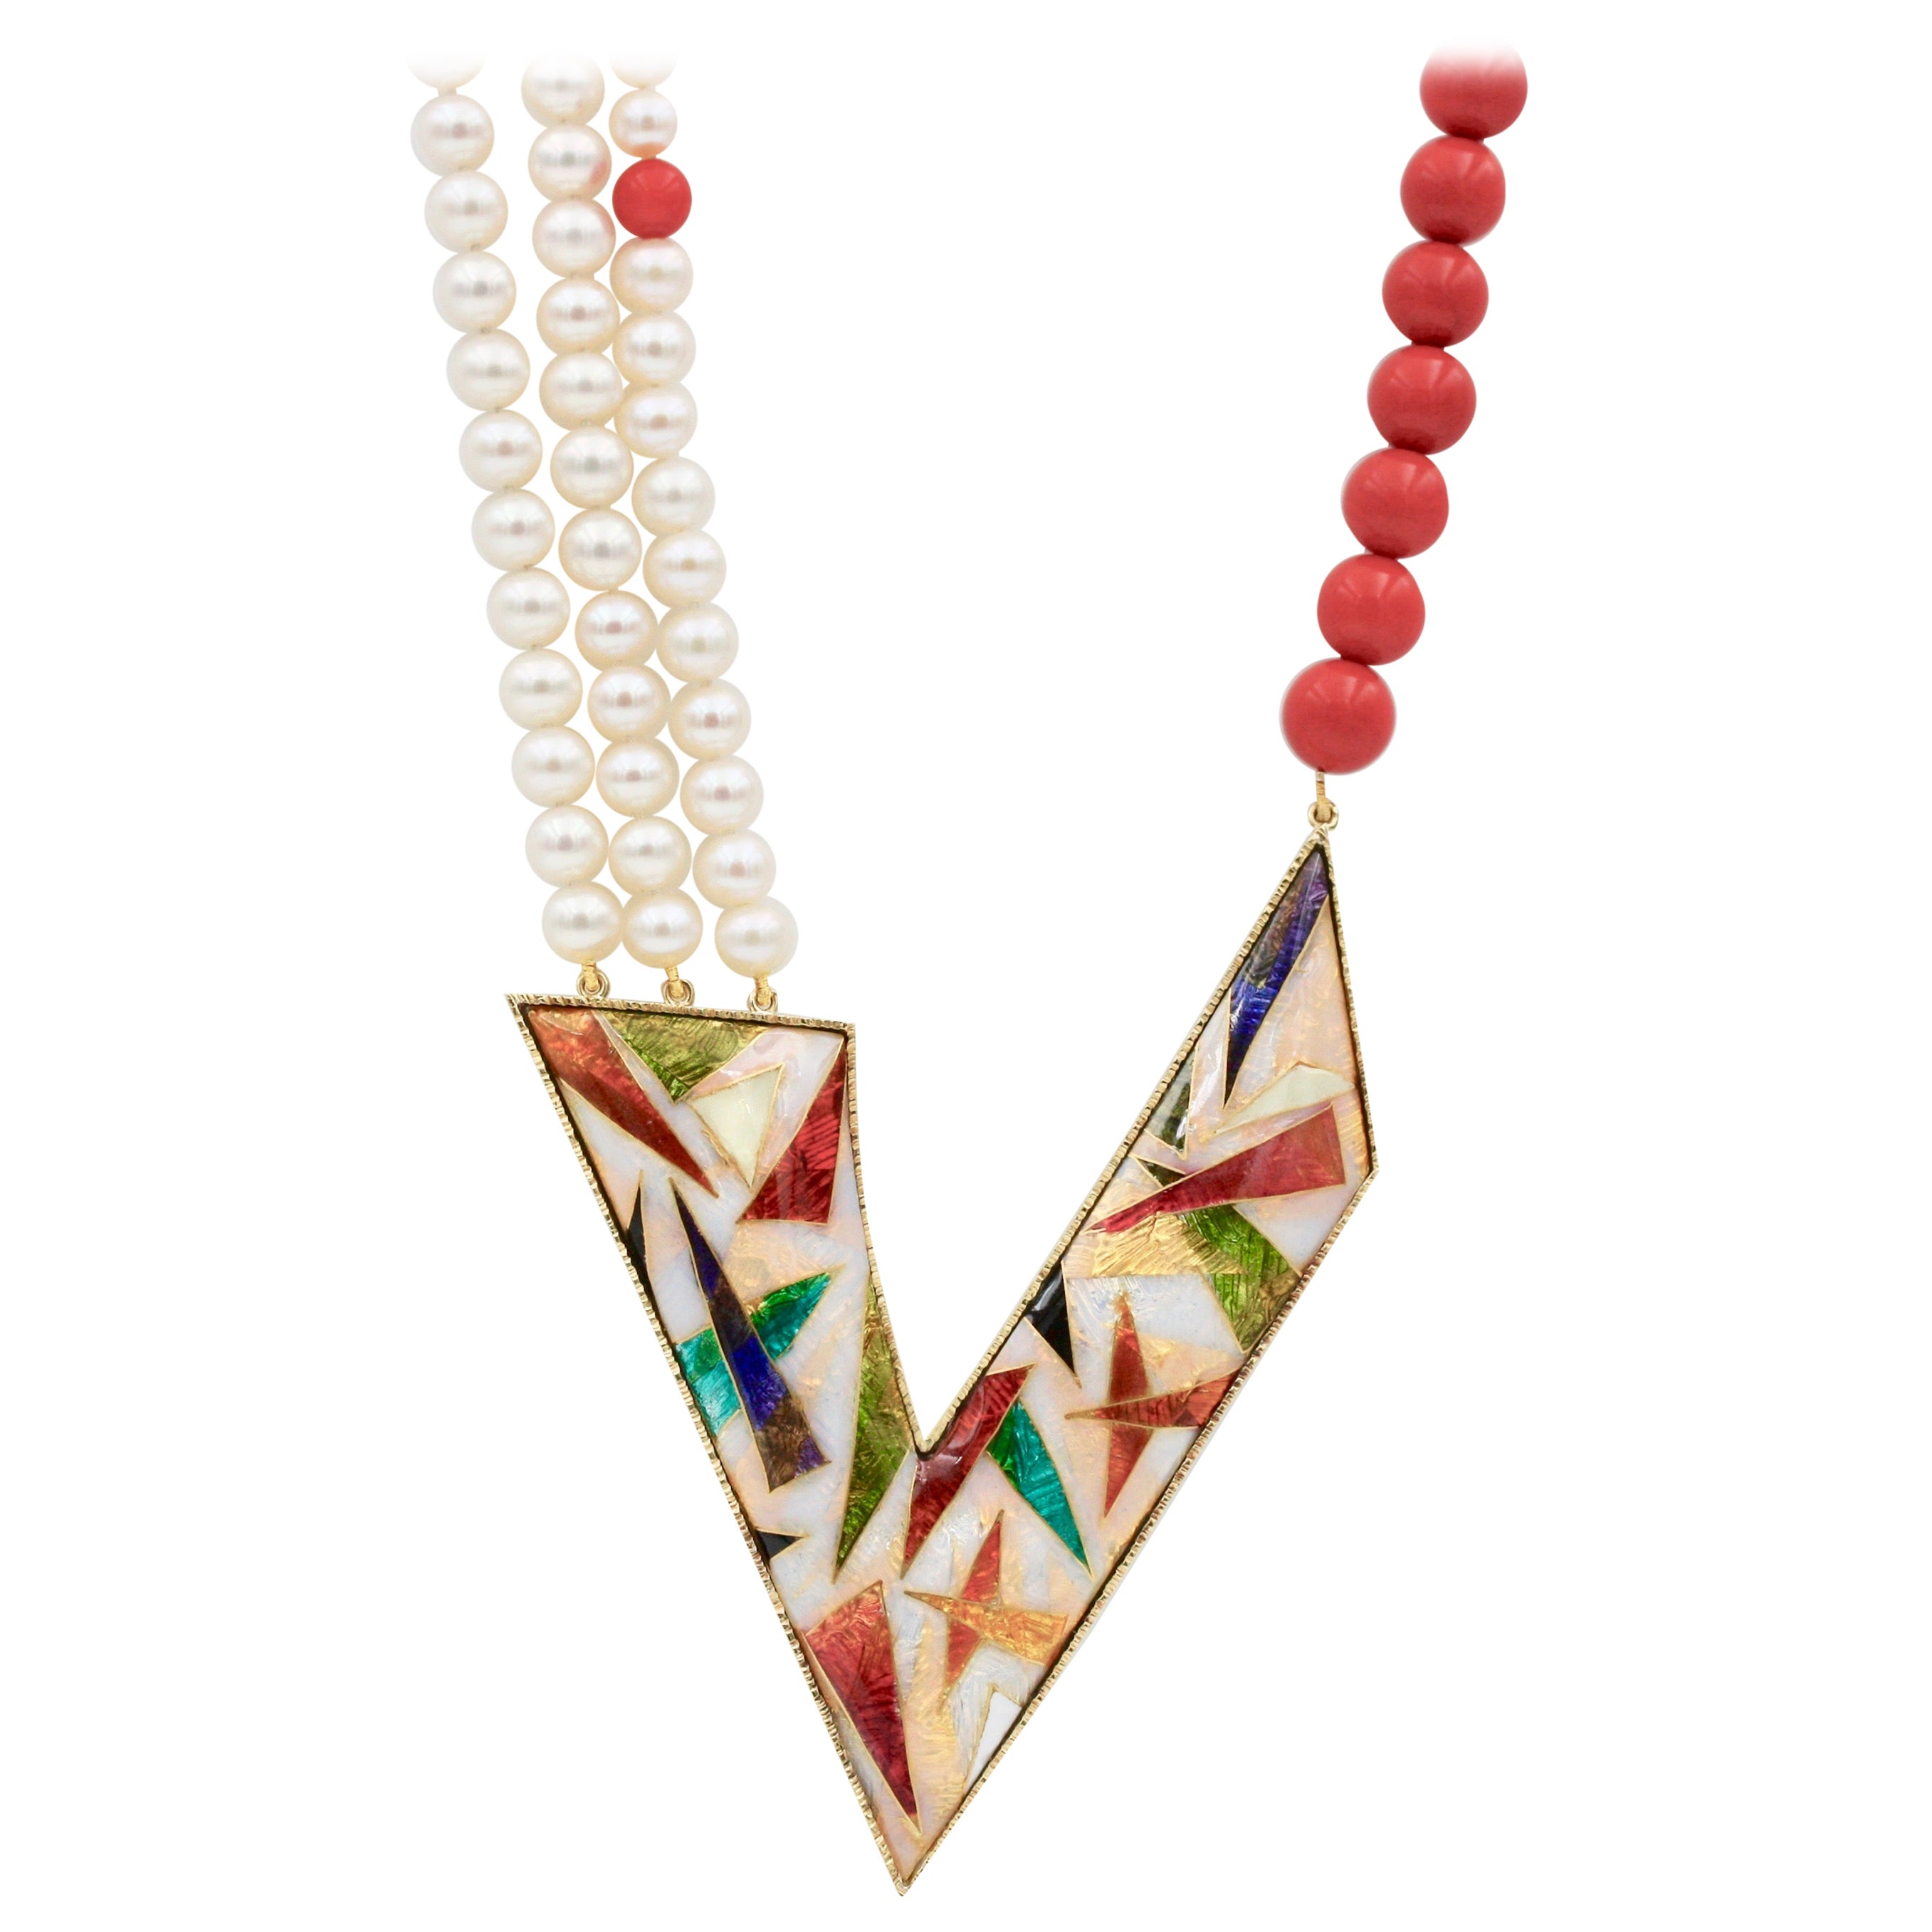 Cloisonné Enamel 24 and 22 Karat Yellow Gold Coral Beads Pearls Pendant Necklace